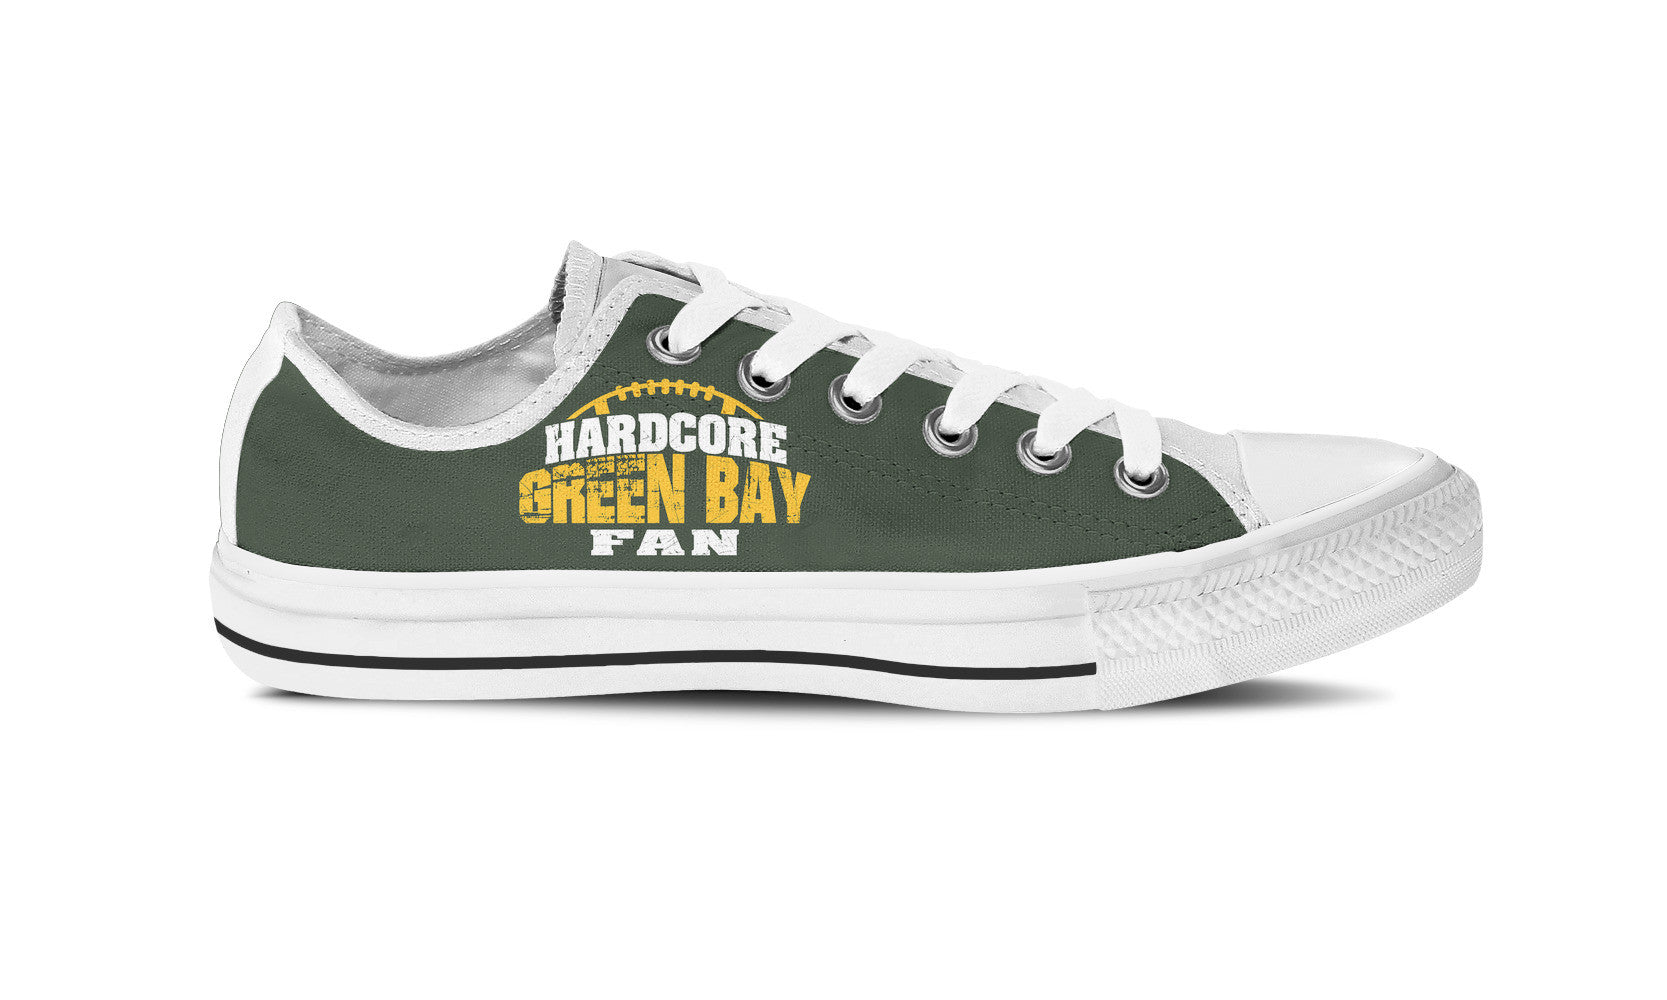 Hardcore Green Bay Football Fan Womens Shoe